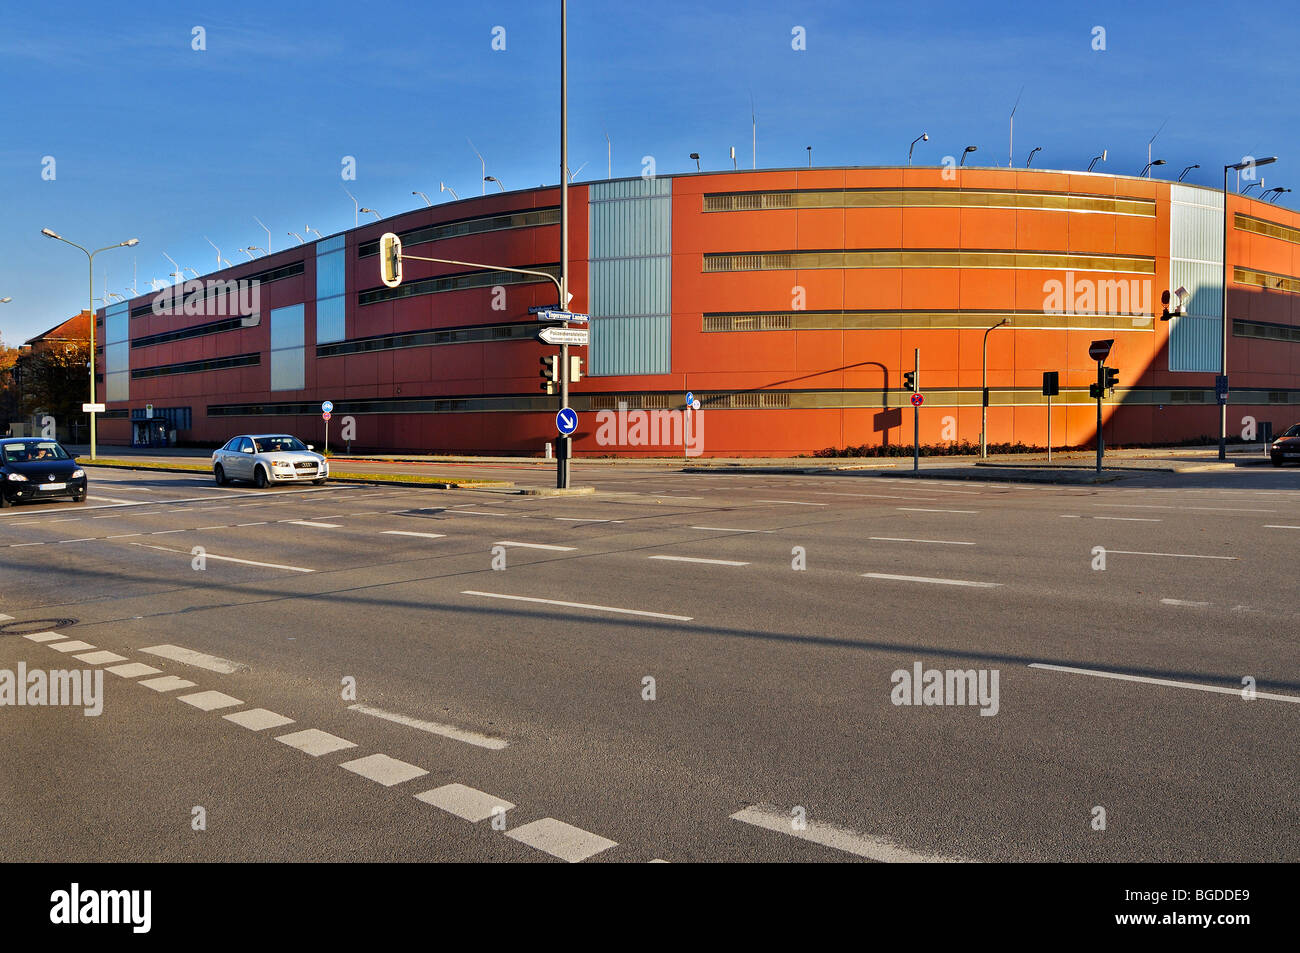 New women's prison, Stadelheimerstrasse, Munich, Bavaria, Germany, Europe - Stock Image